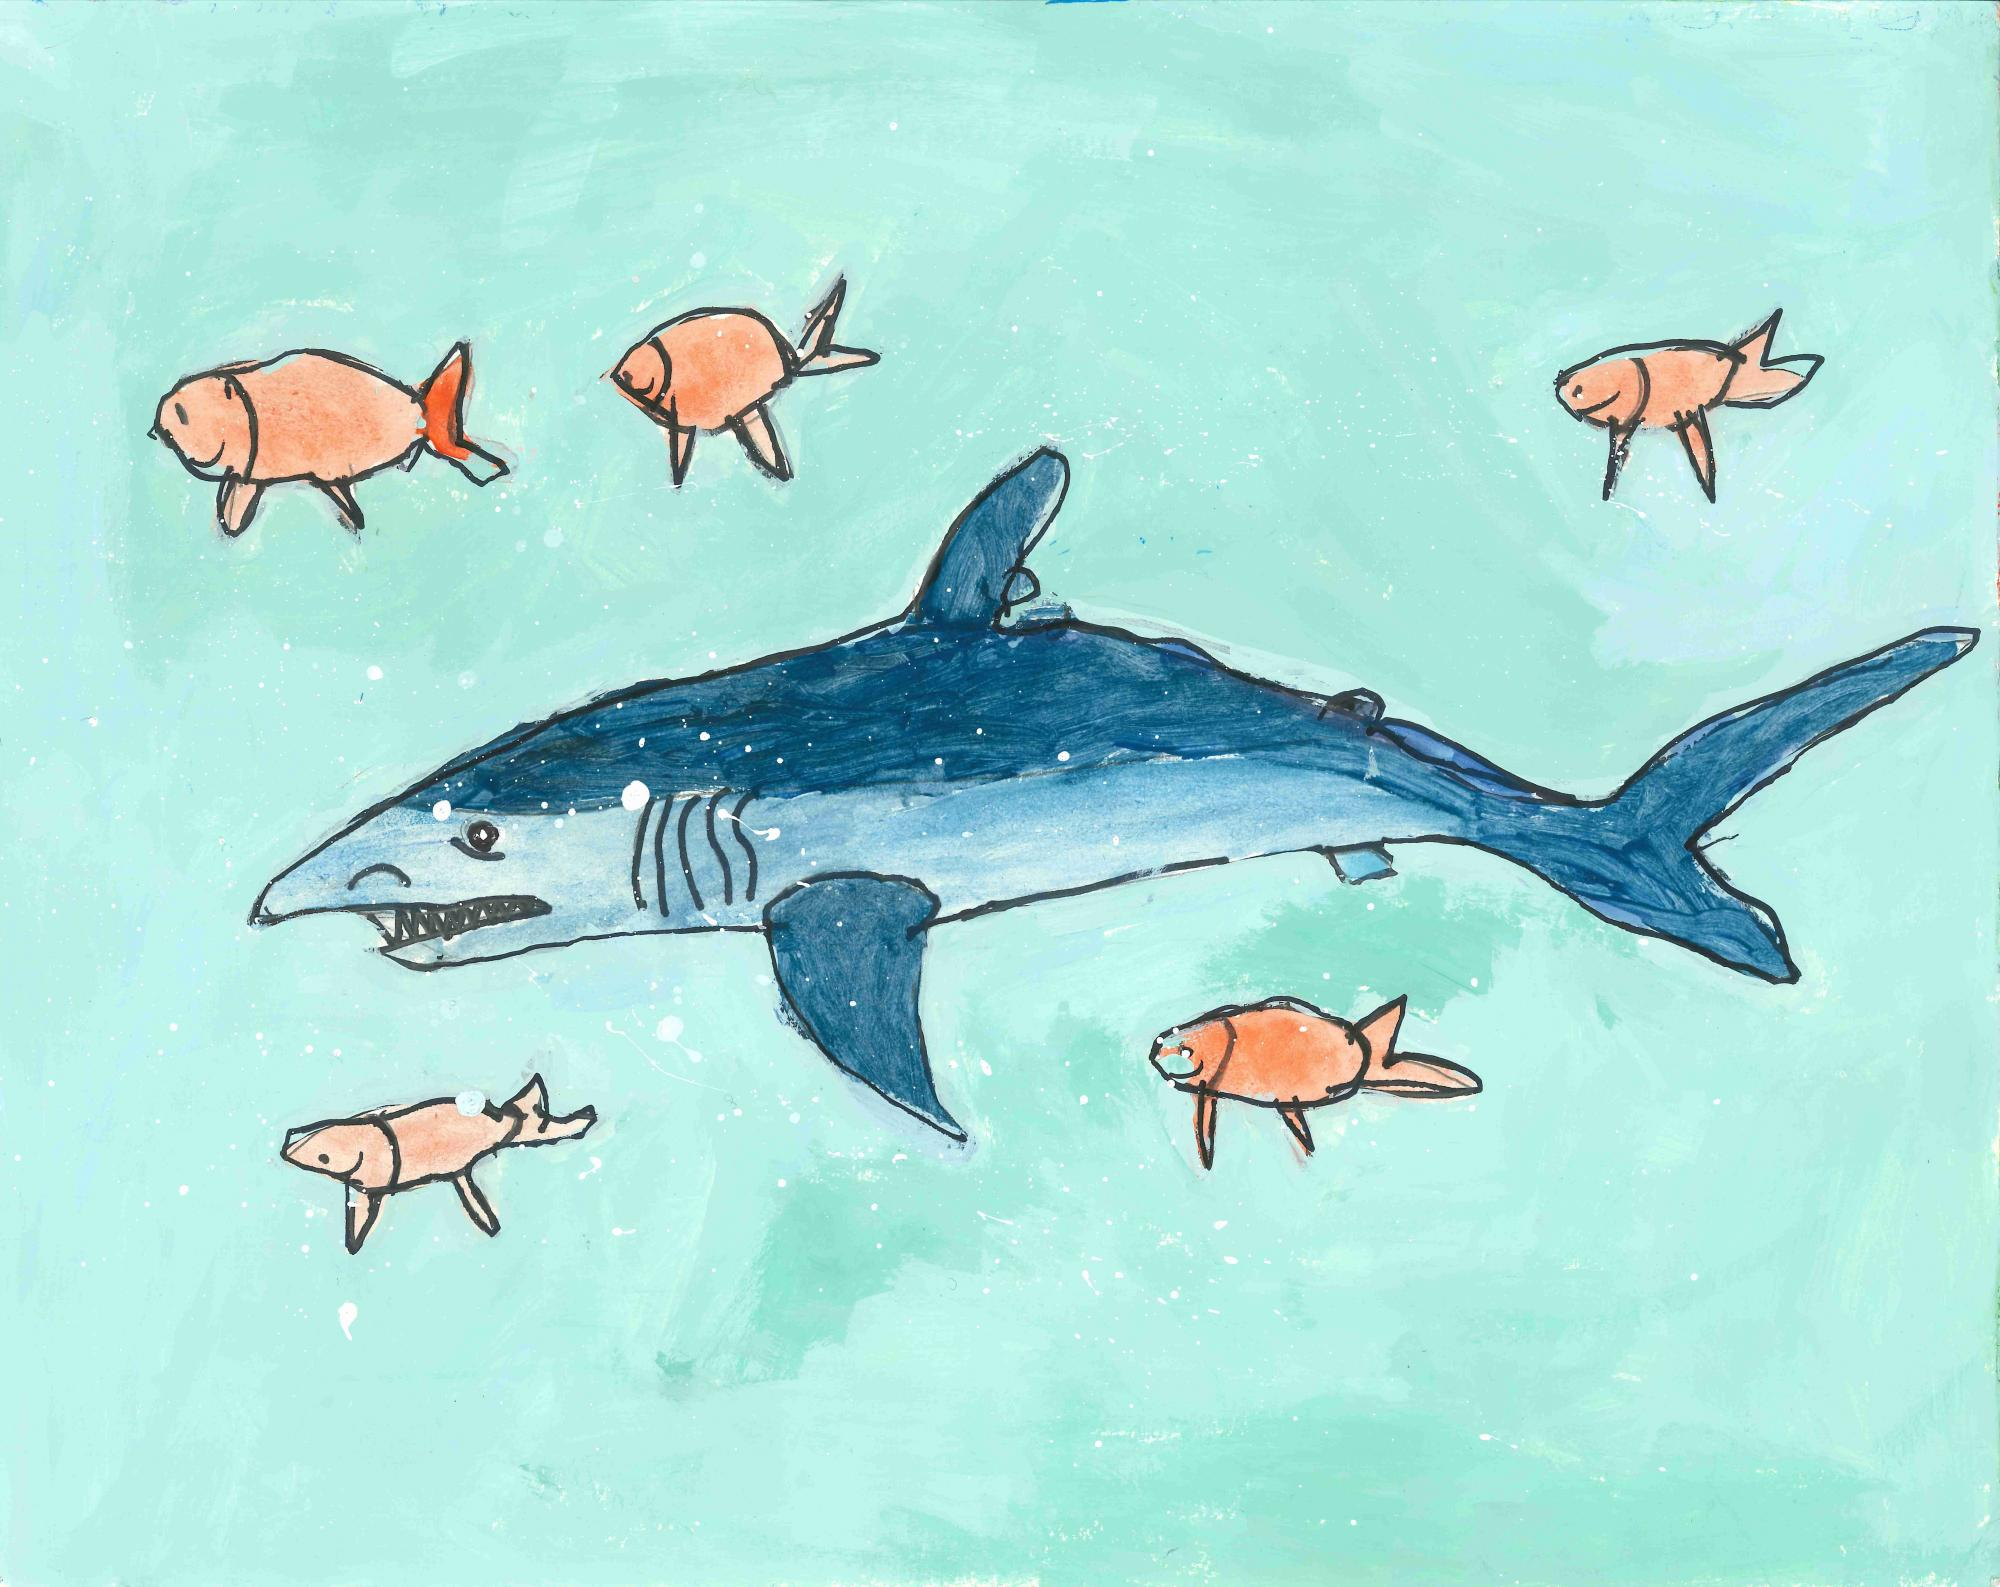 """Shark"" Andrew Wang, age 8. Snellville, Georgia. United States. Shijun Art Studio. Teacher: Shijun Munns. River of Words 2018 Finalist."